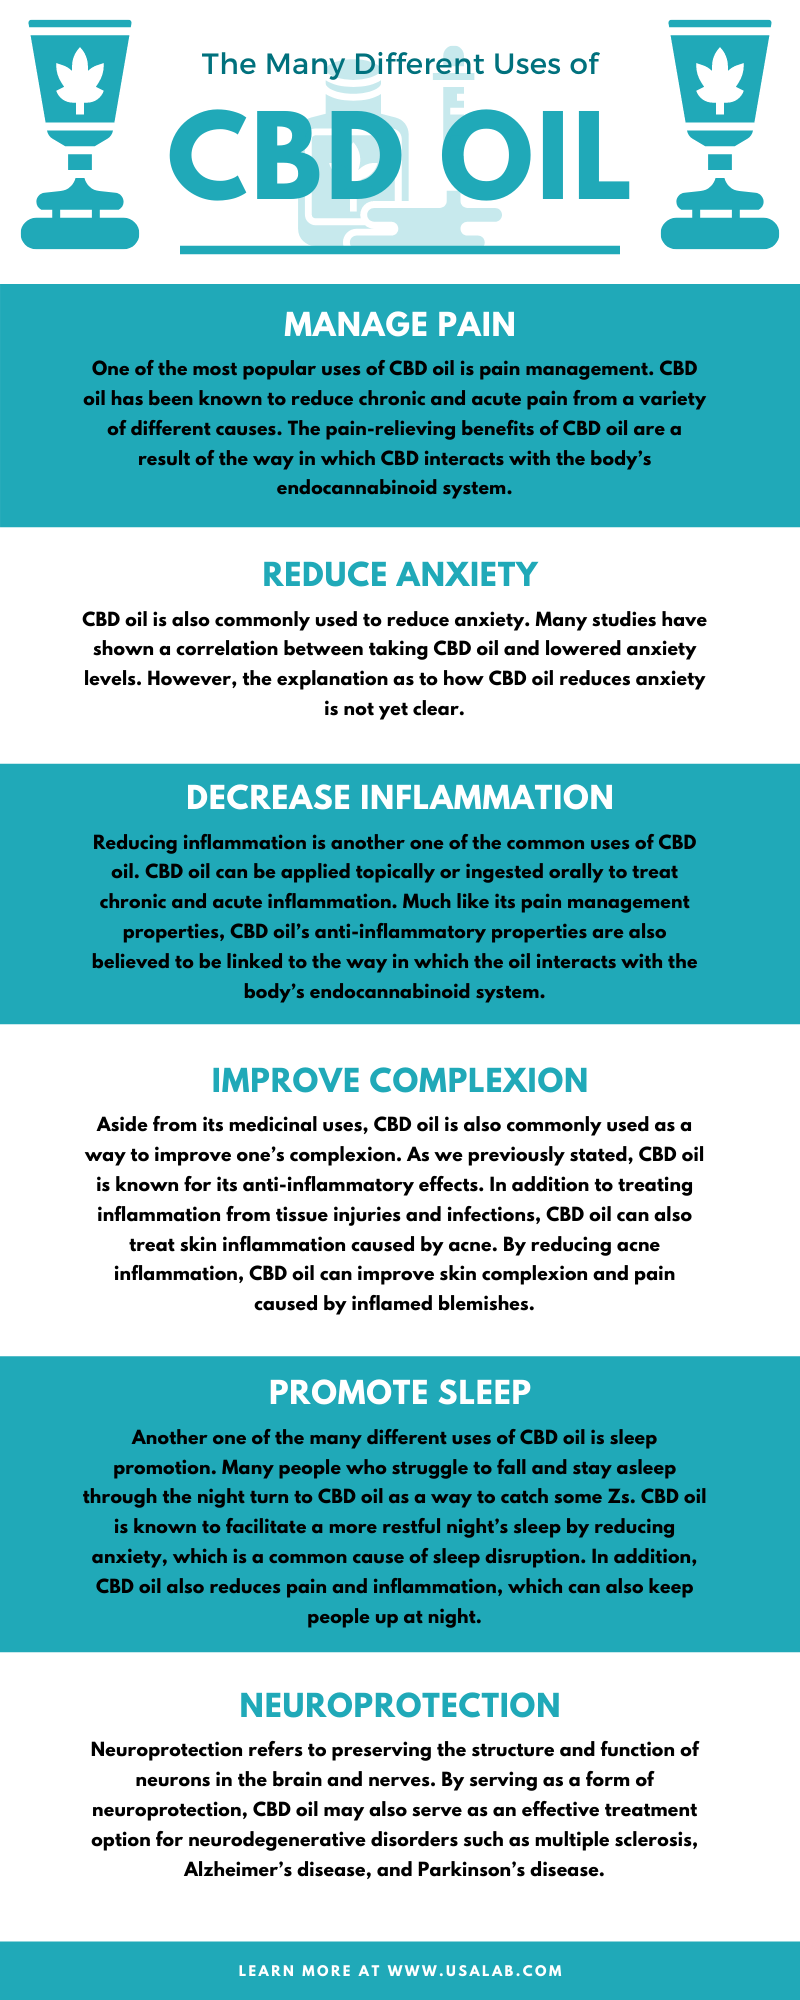 The Many Different Uses of CBD Oil